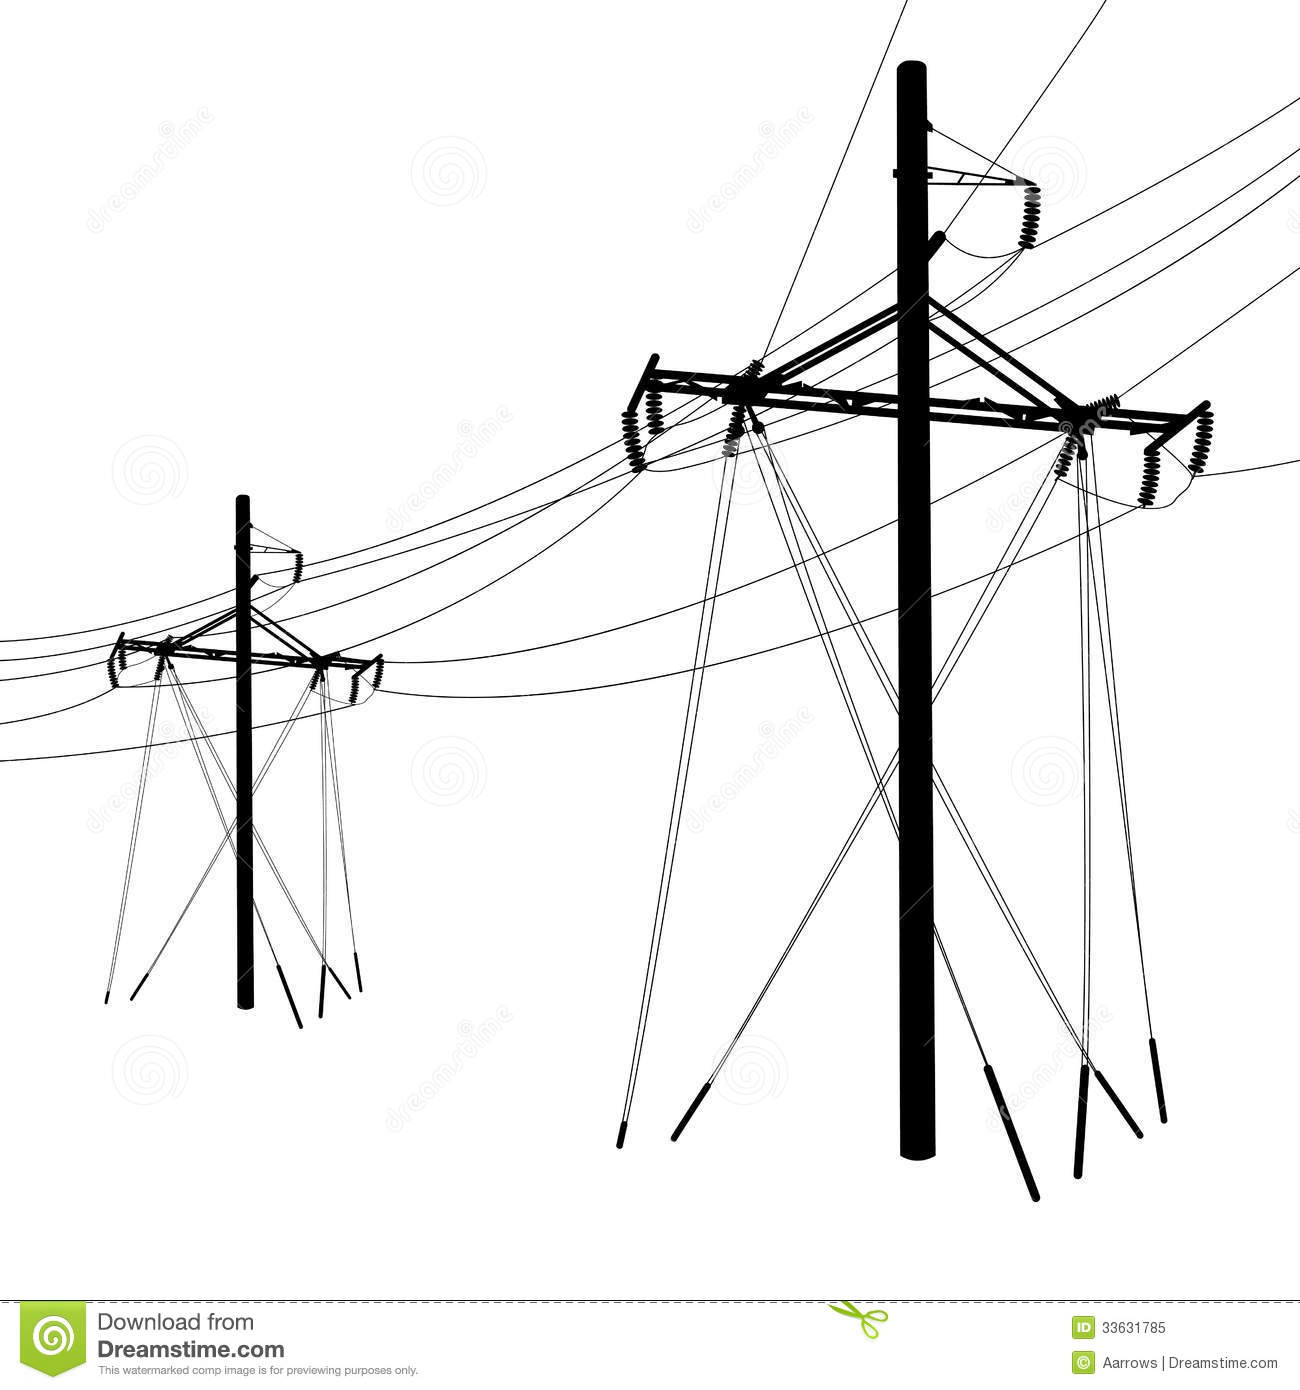 Voltage Power Lines Stock Vector Illustration Of Cable